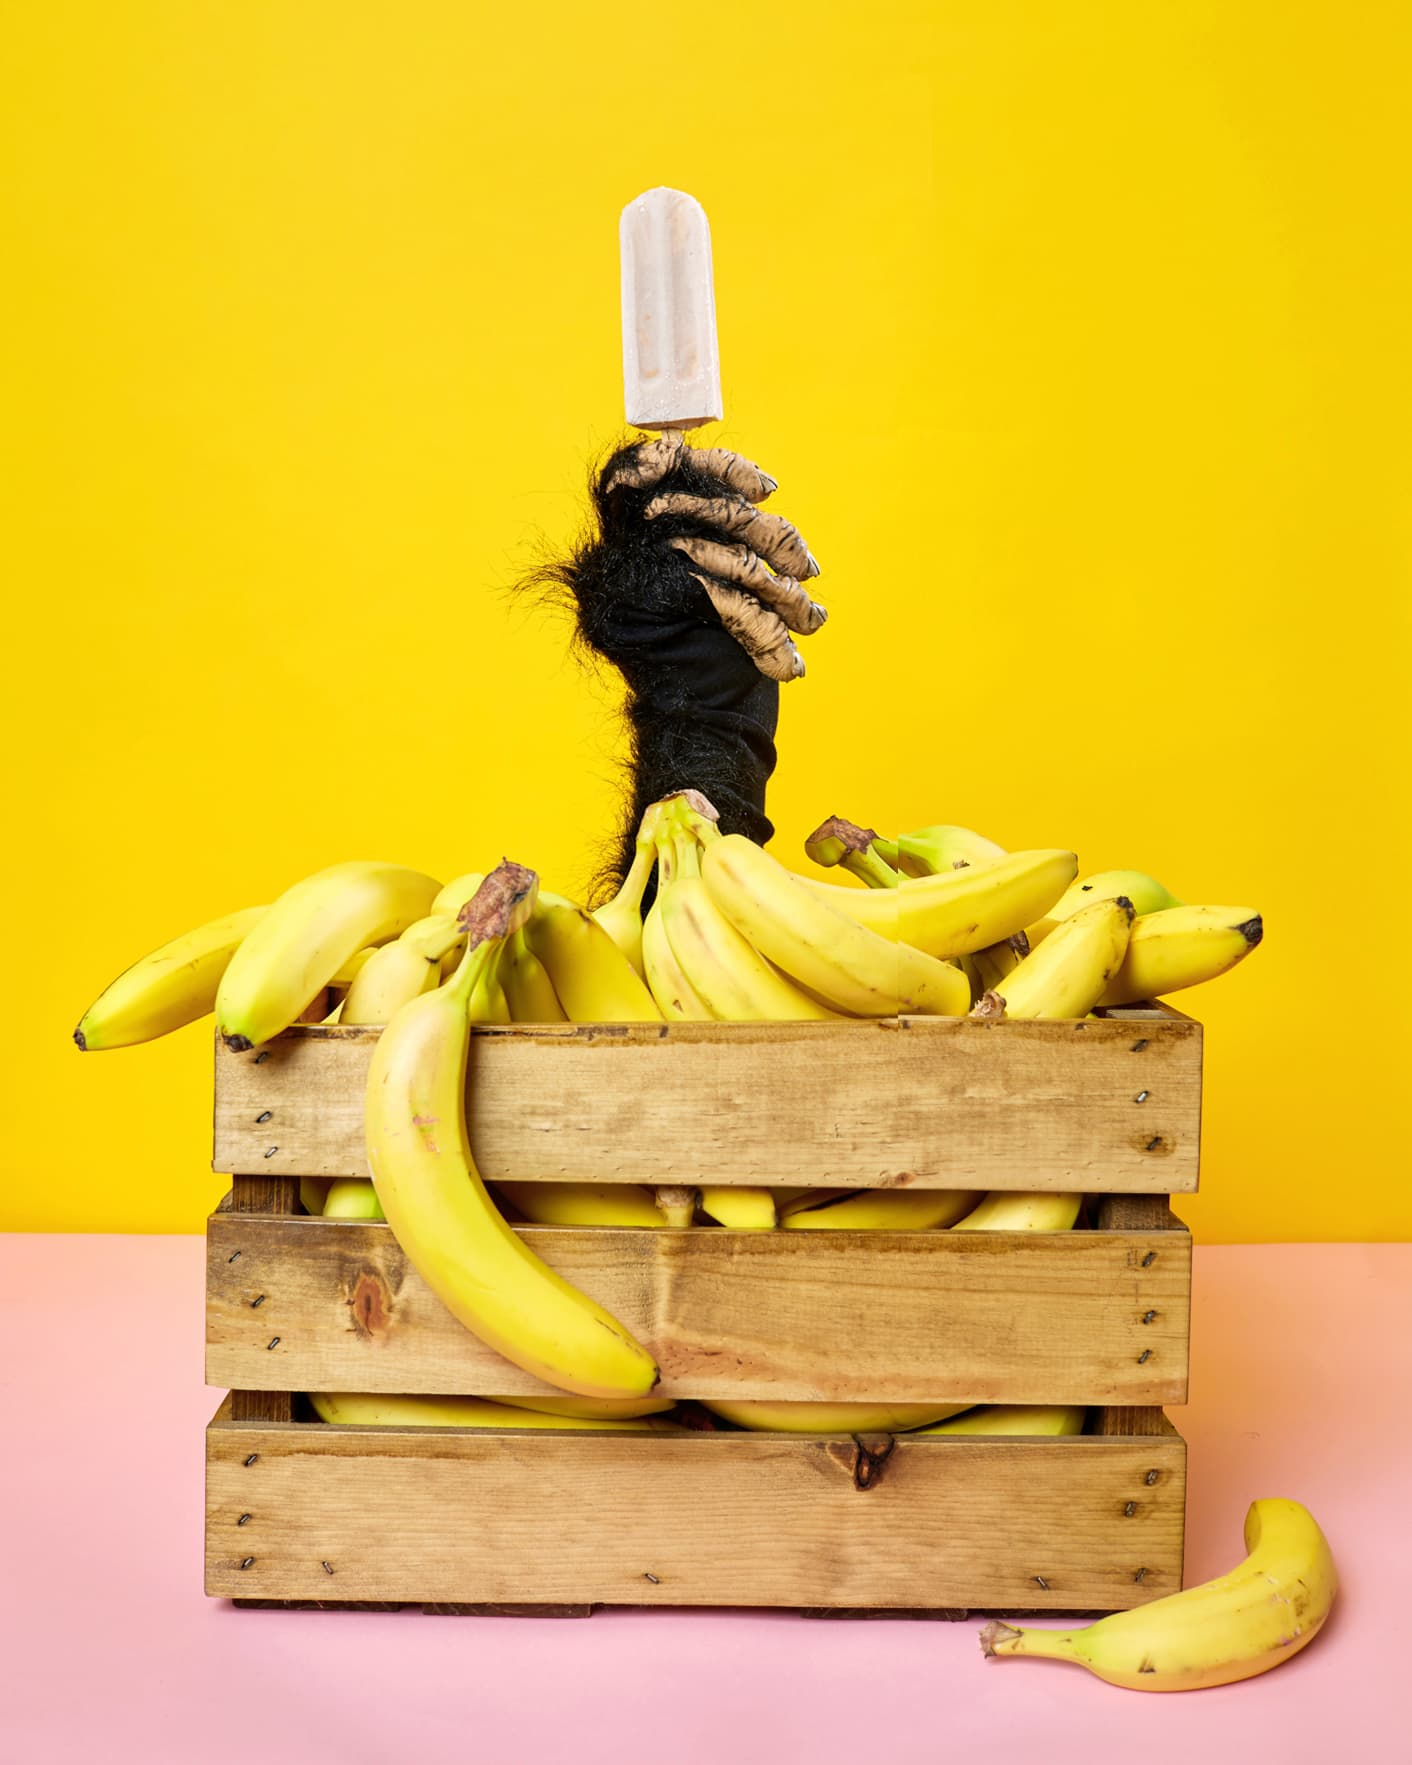 Very Clever Photo Art Direction